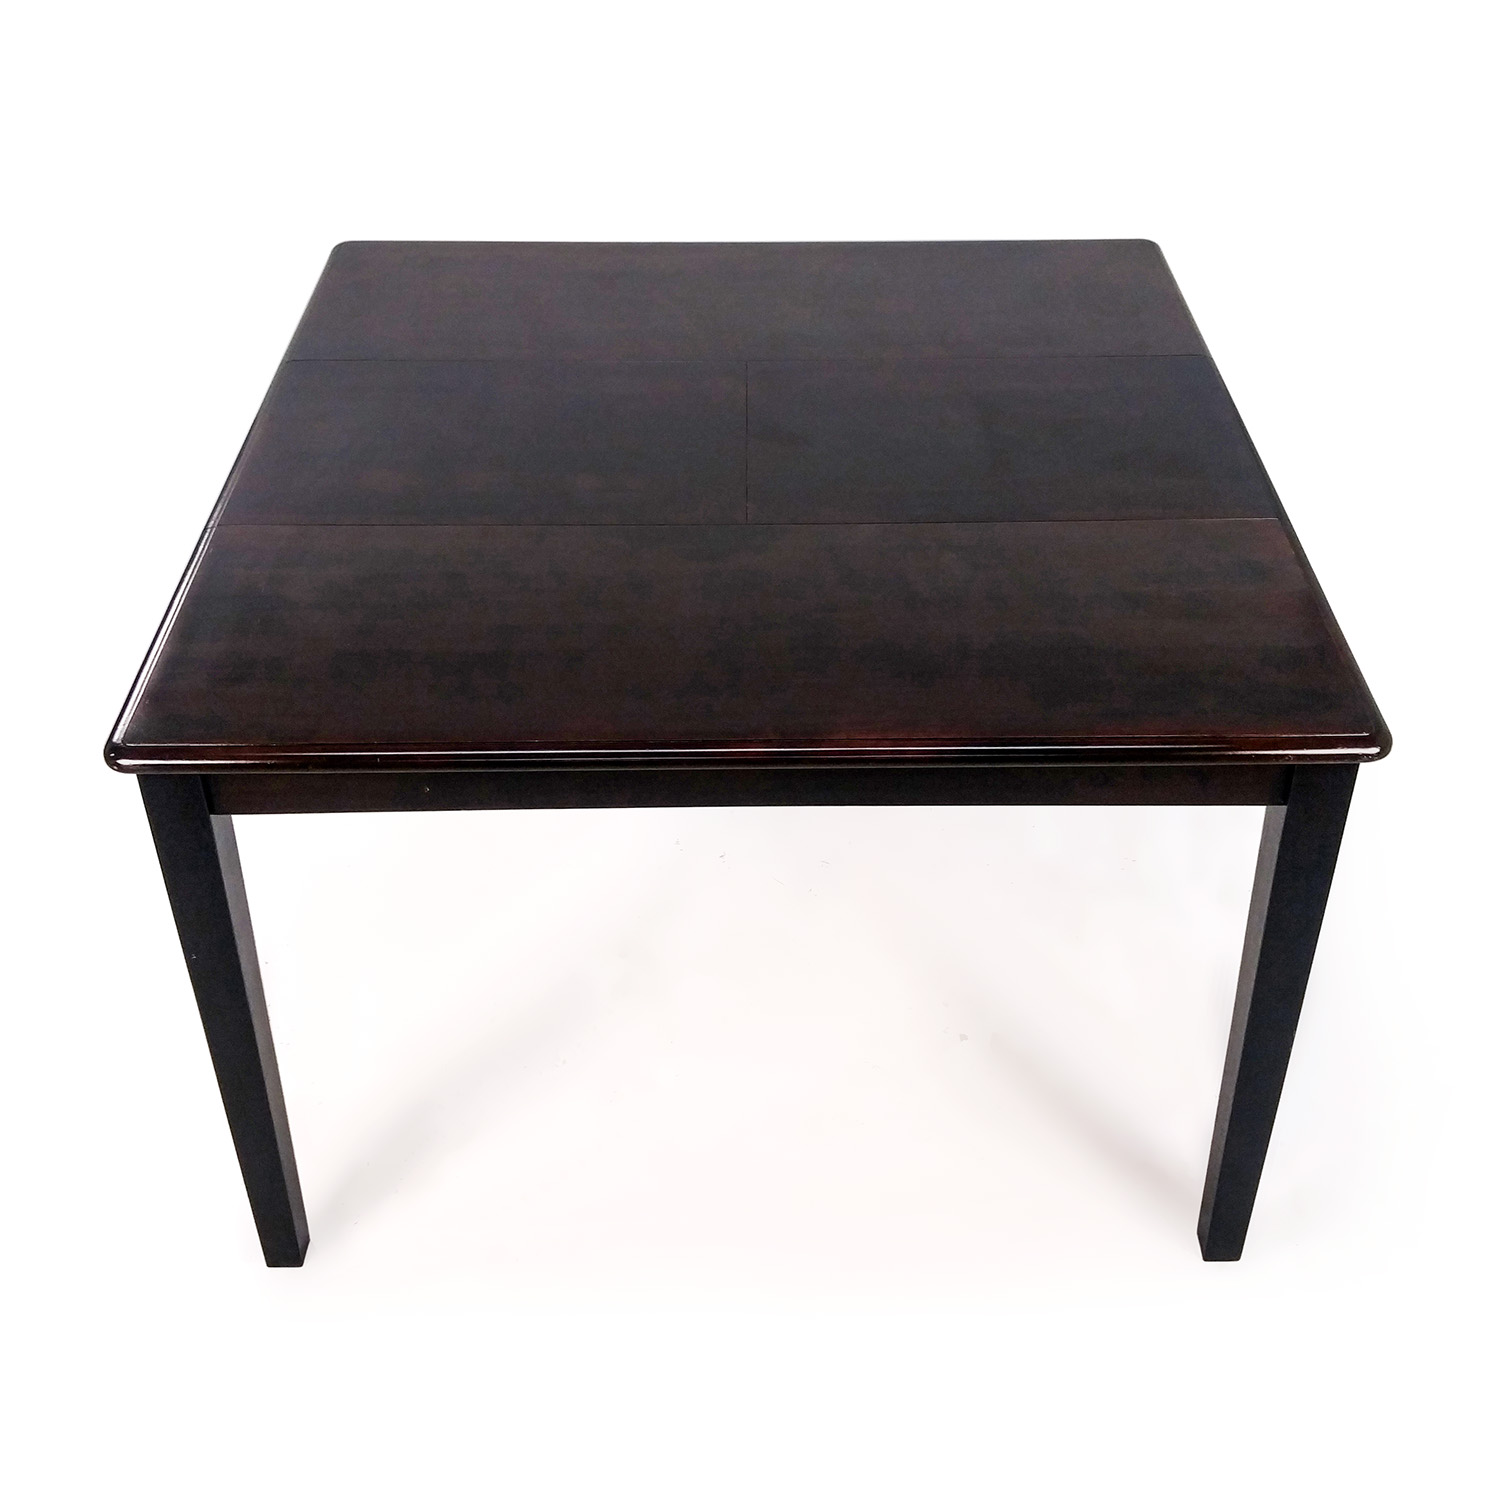 Pictures Of Dinner Tables 84% off - ashley furniture ashley nola round dining table / tables